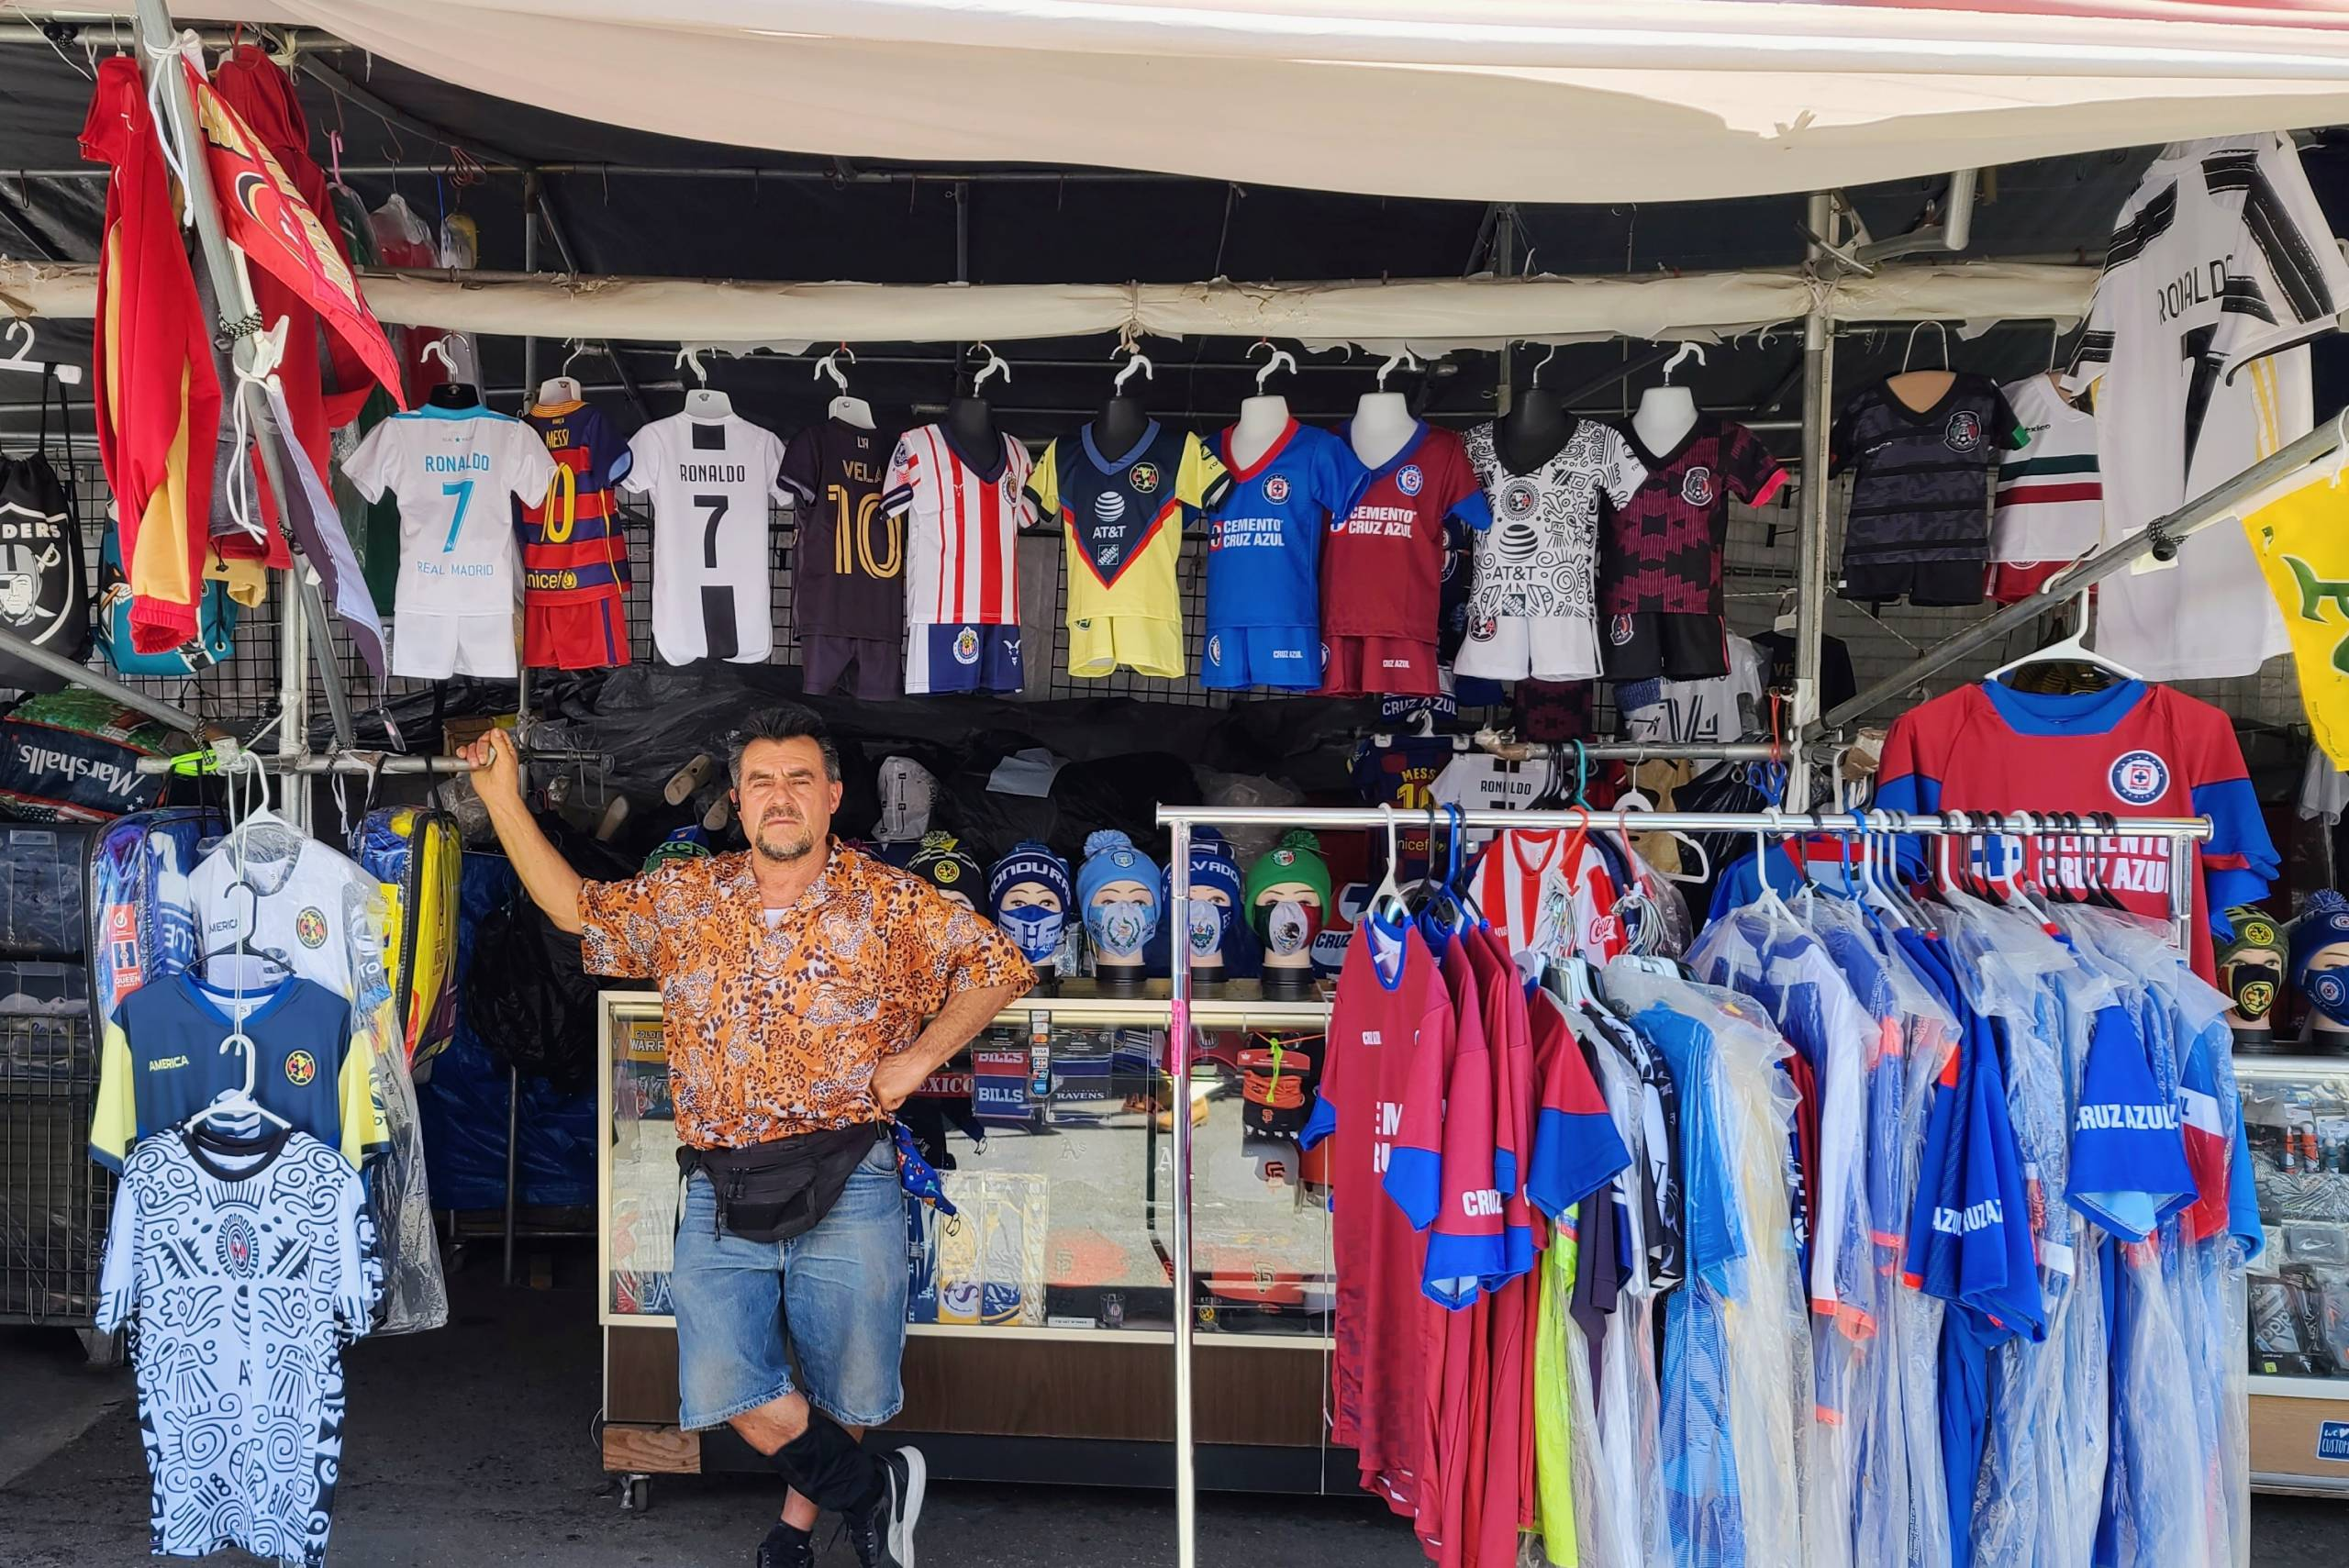 Mario Davila stands in front of his stall that is covered in jerseys of different soccer teams in all different sizes. They hang next to him, on top of him, all around him.